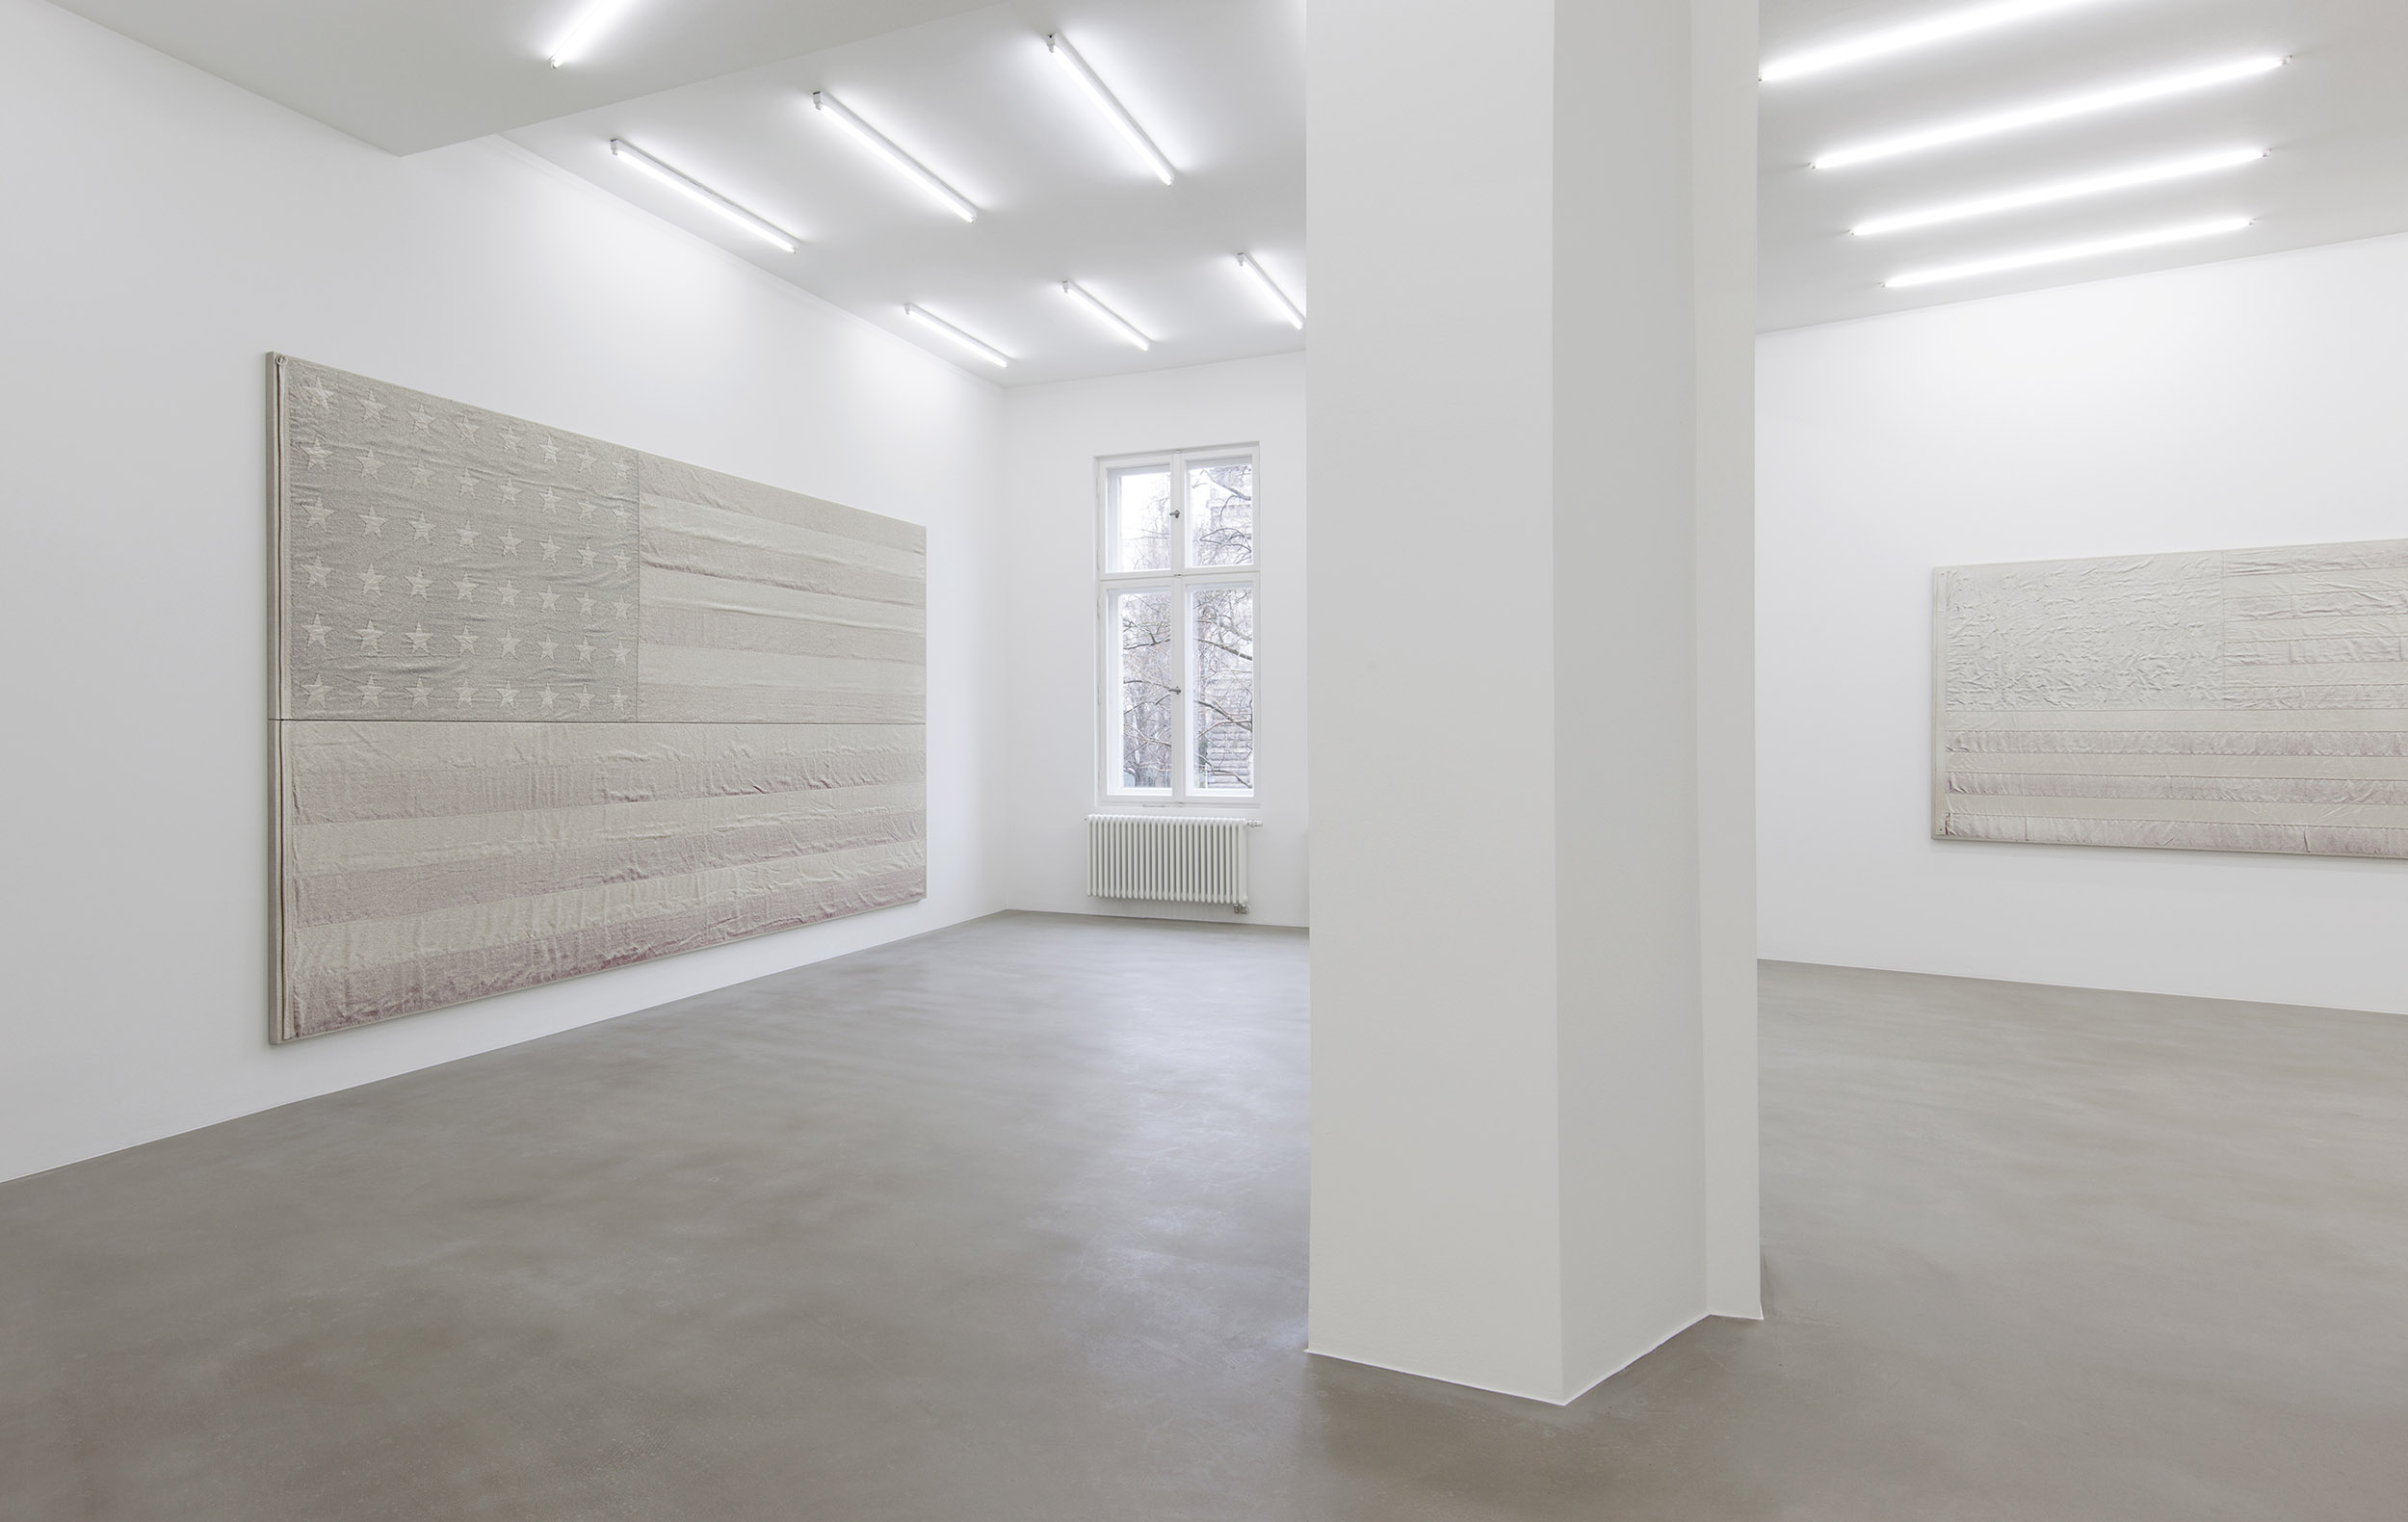 4 - AA Bronson at Esther Schipper Berlin